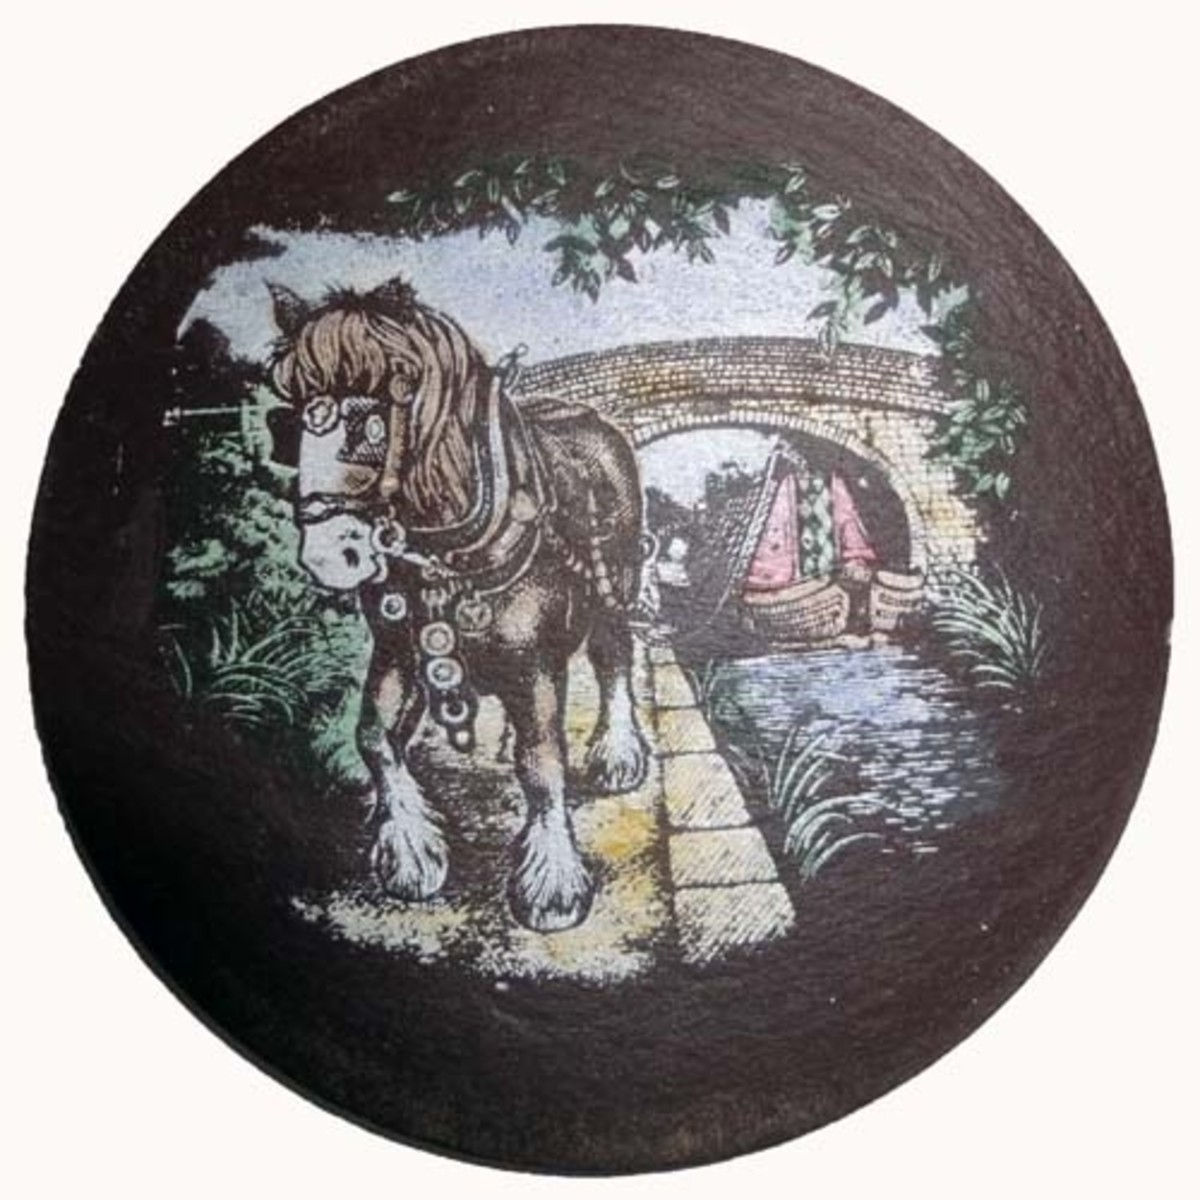 Slate coaster of horse pulling barge on canal